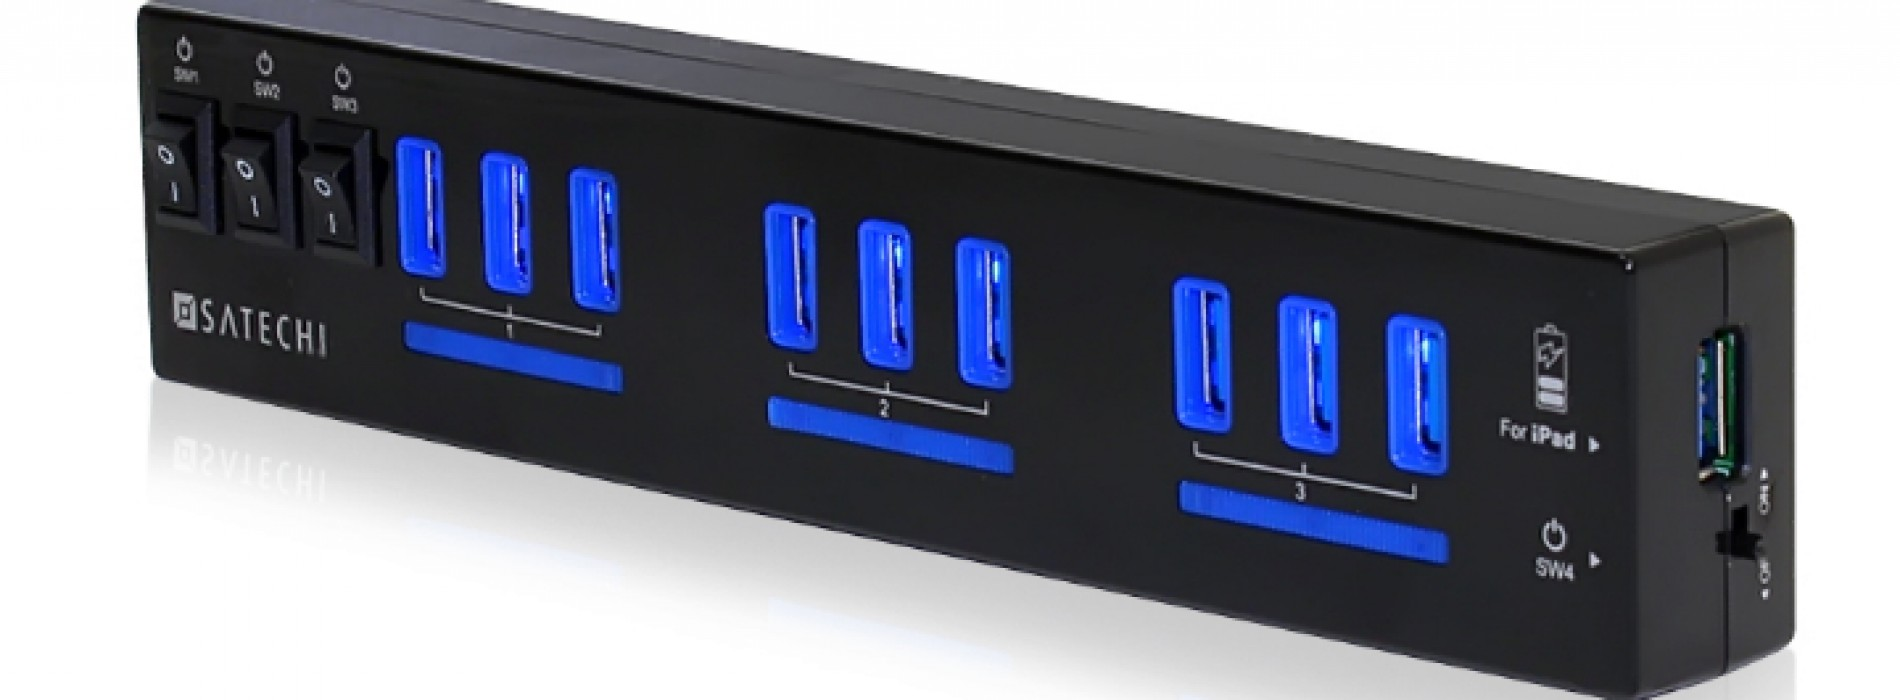 Pick of the Day: Satechi 10-port USB 3.0 Hub